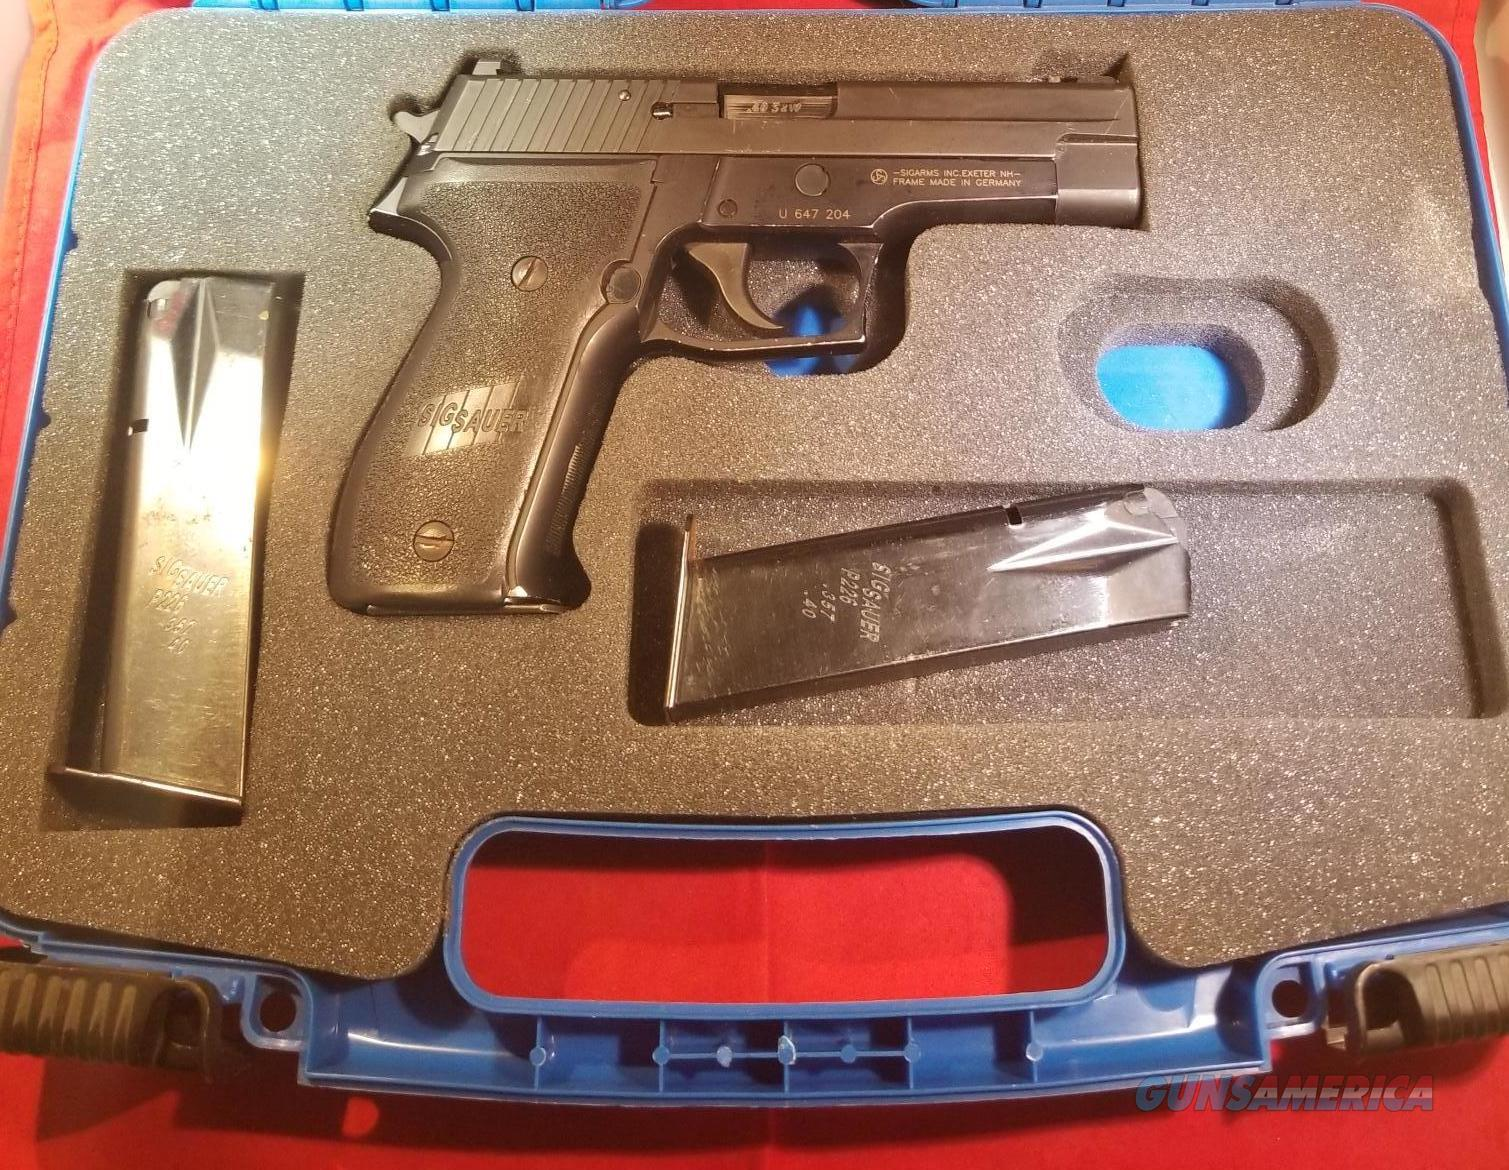 USED SIG SAUER 226 .40S&W W/ LASERMAX NO CC FEES FREE SHIPPING!!!!  Guns > Pistols > Sig - Sauer/Sigarms Pistols > P226